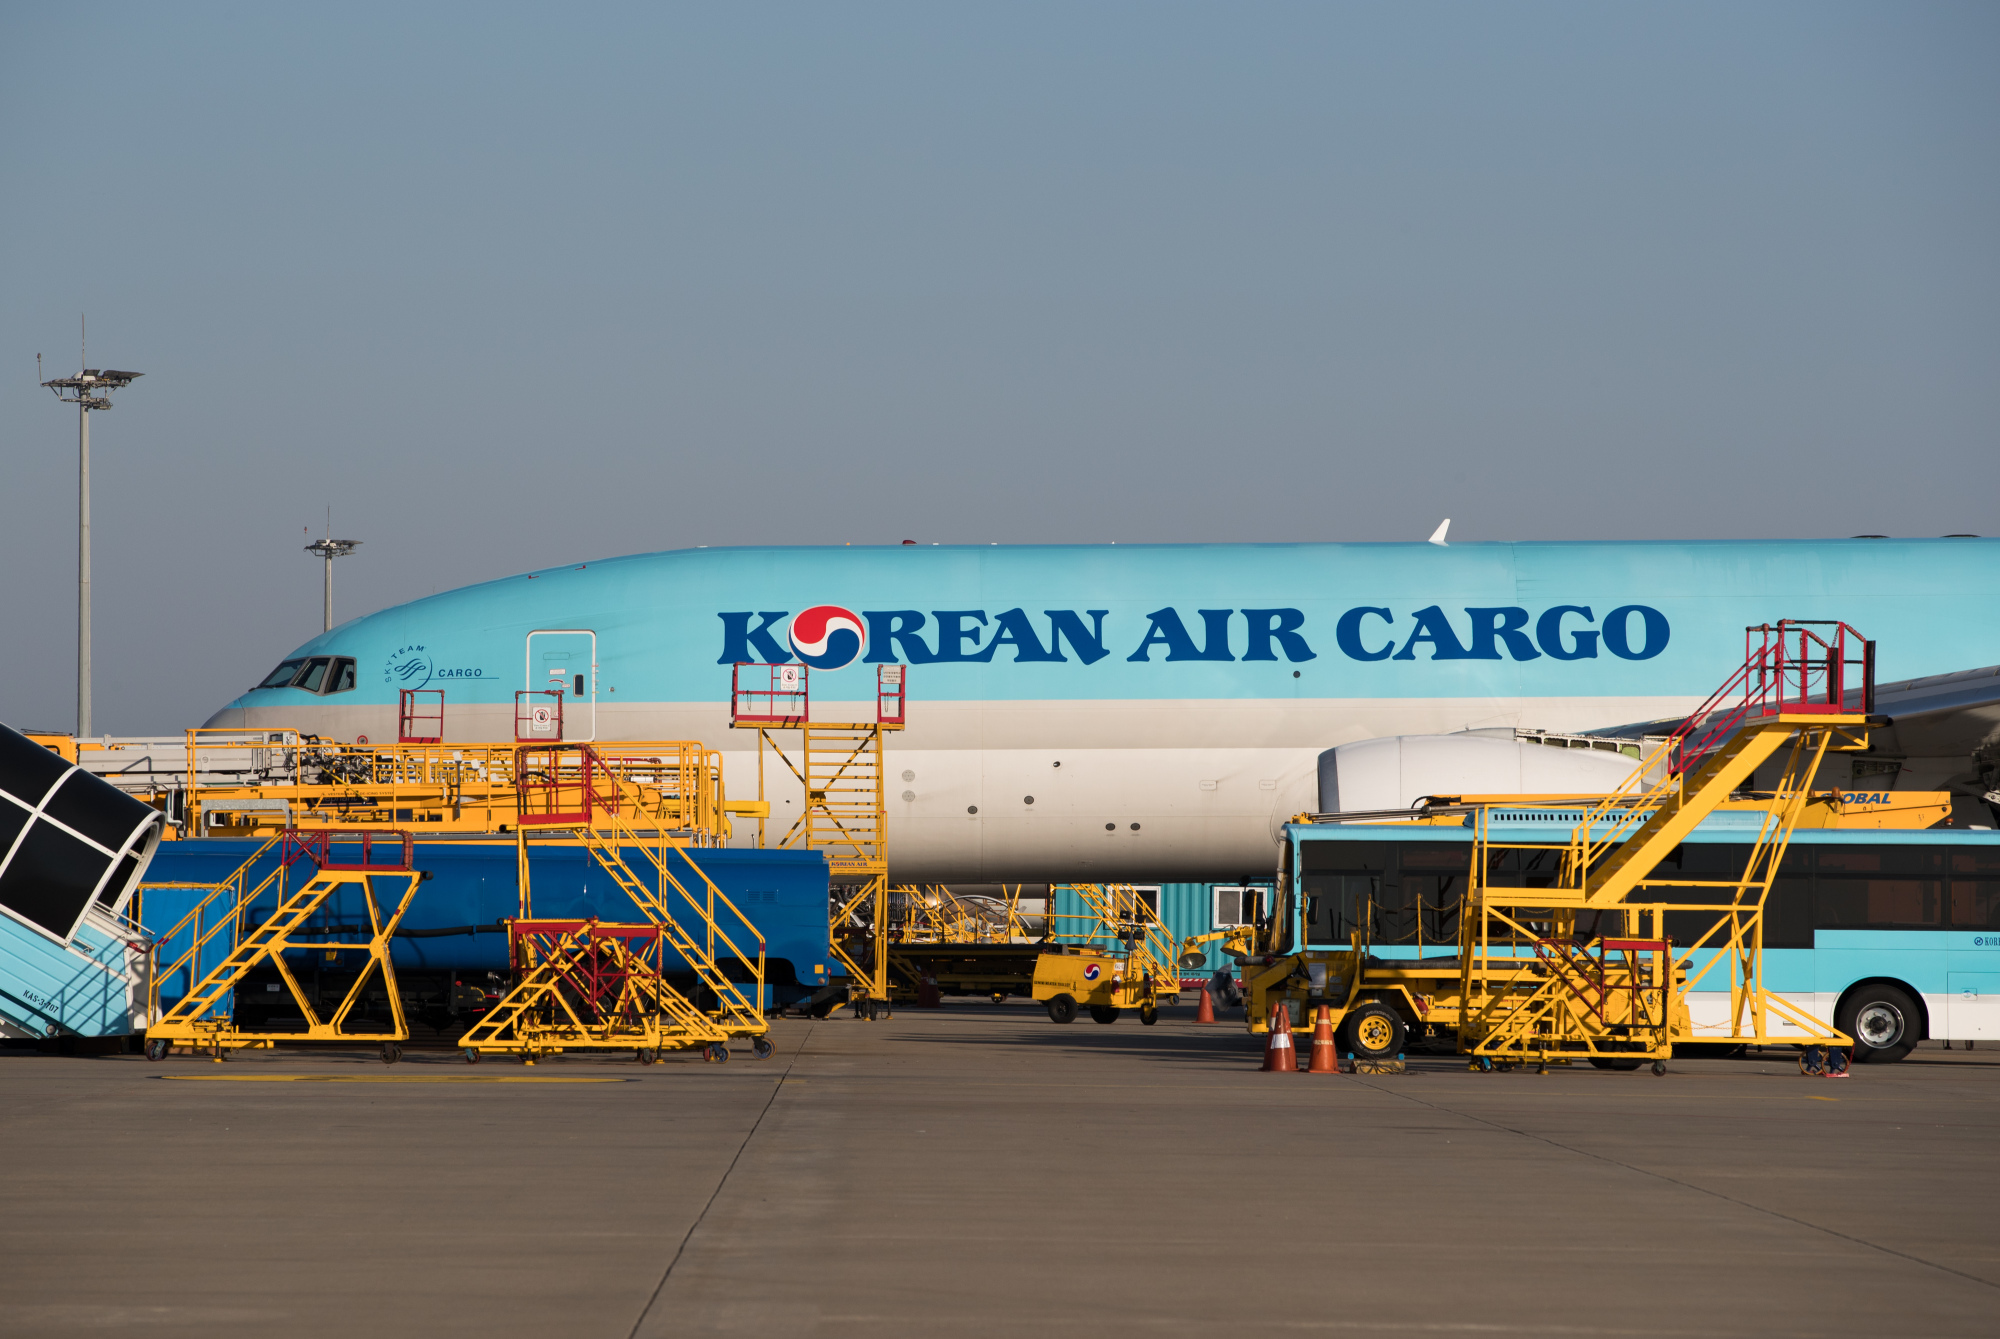 A Korean Air Lines Co. cargo plane stands on the tarmac at Incheon International Airport in Incheon, South Korea